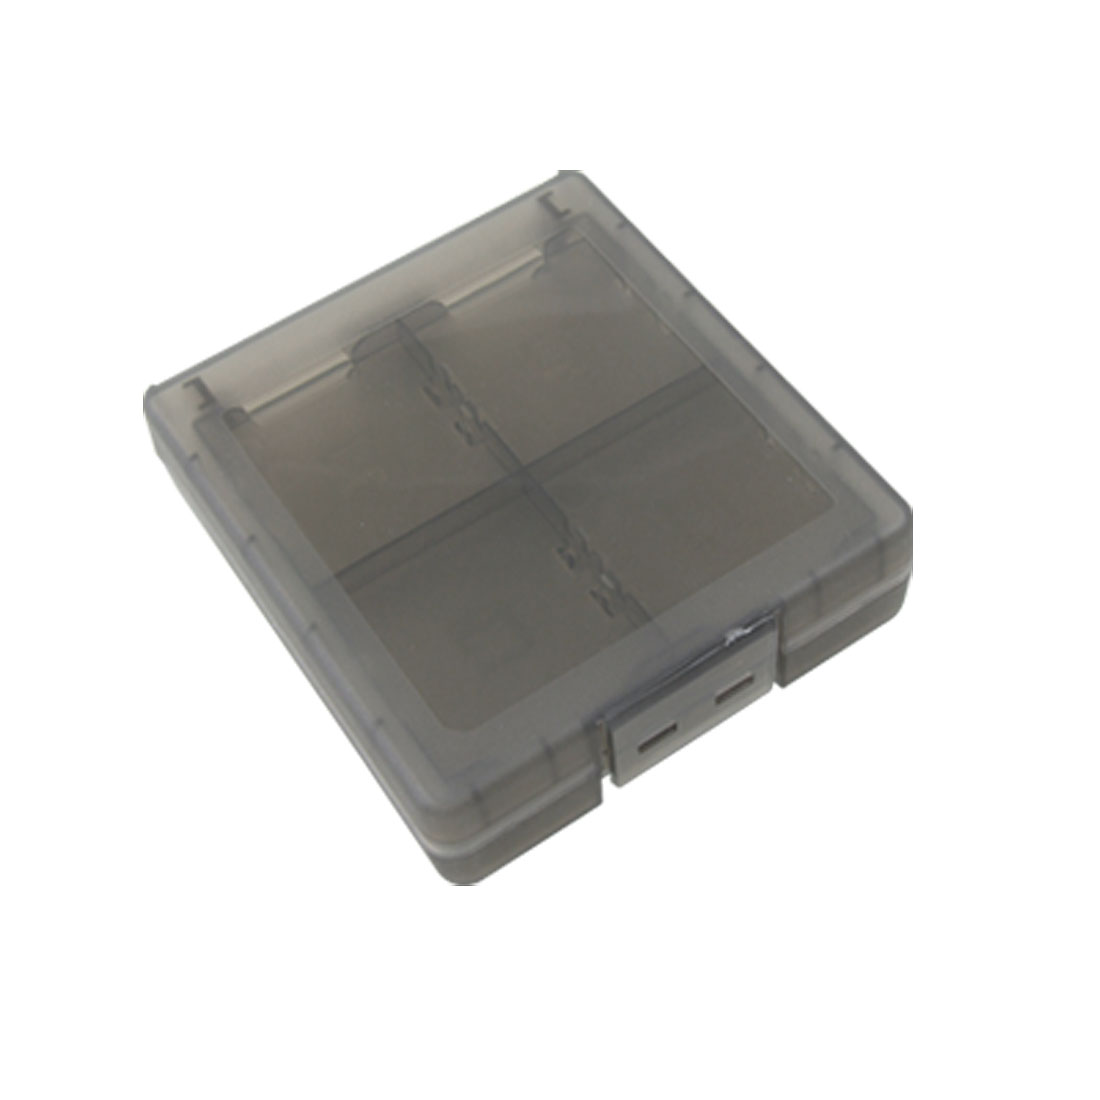 Gray Game Card Holder Box for Nintendo DS Lite NDS